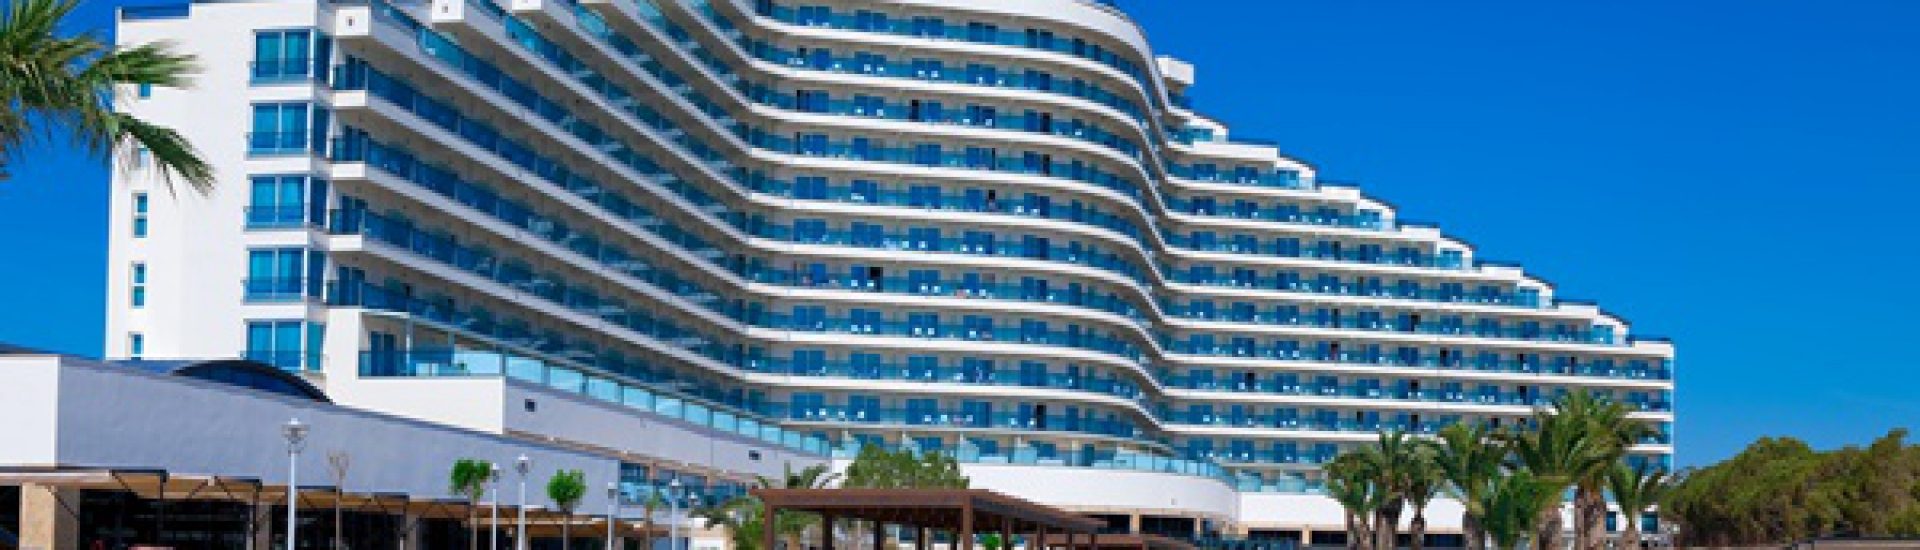 НГ 2020 в Дидим-hotel Venosa Beach Resort & SPA -5*